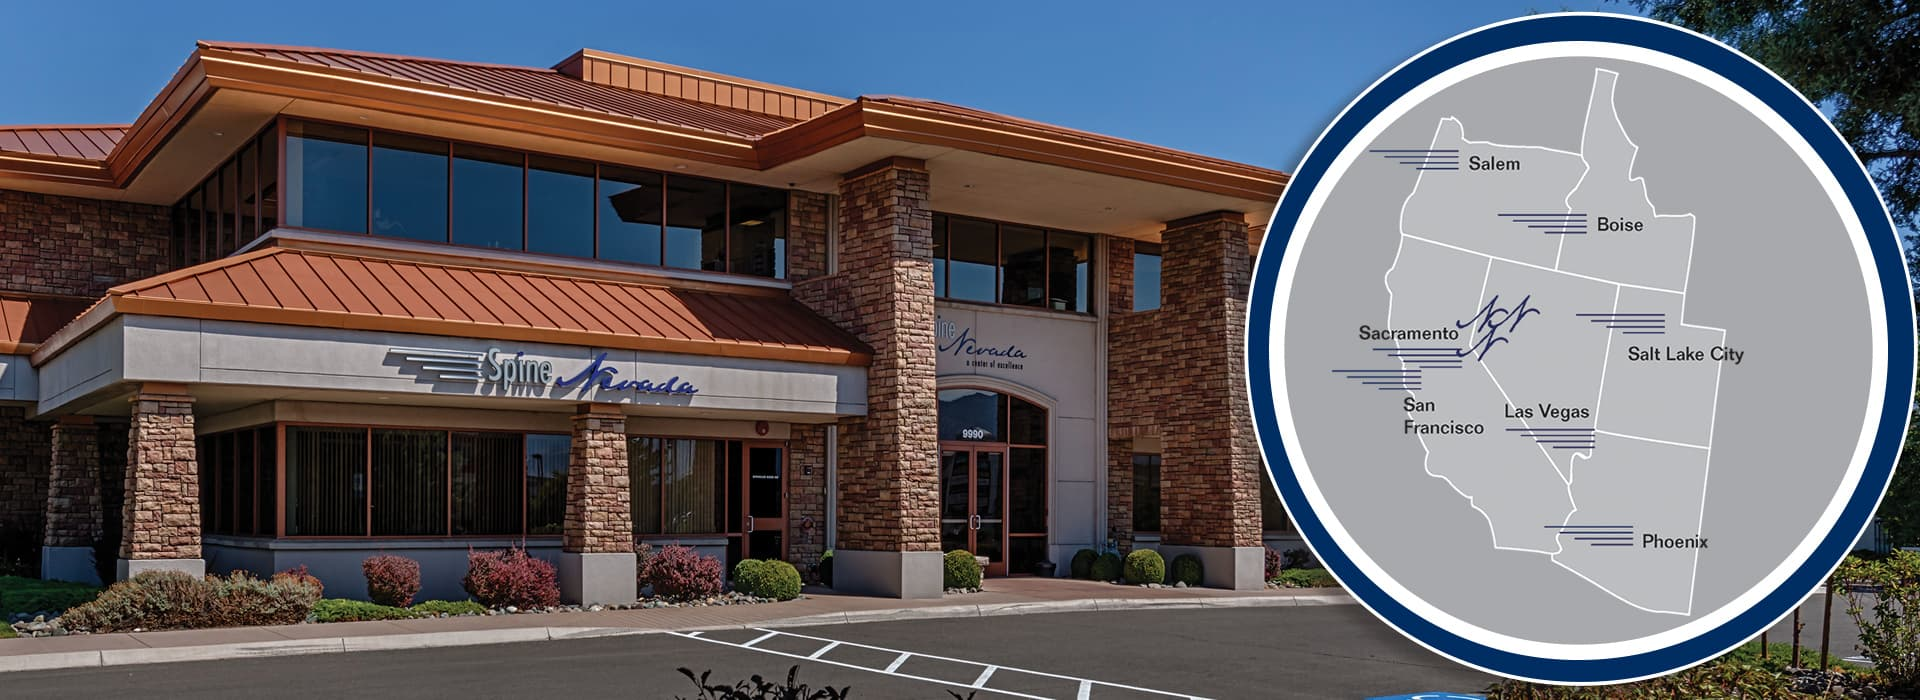 SpineNevada Minimally Invasive Spine Institute includes offices in Reno, Sparks and Carson